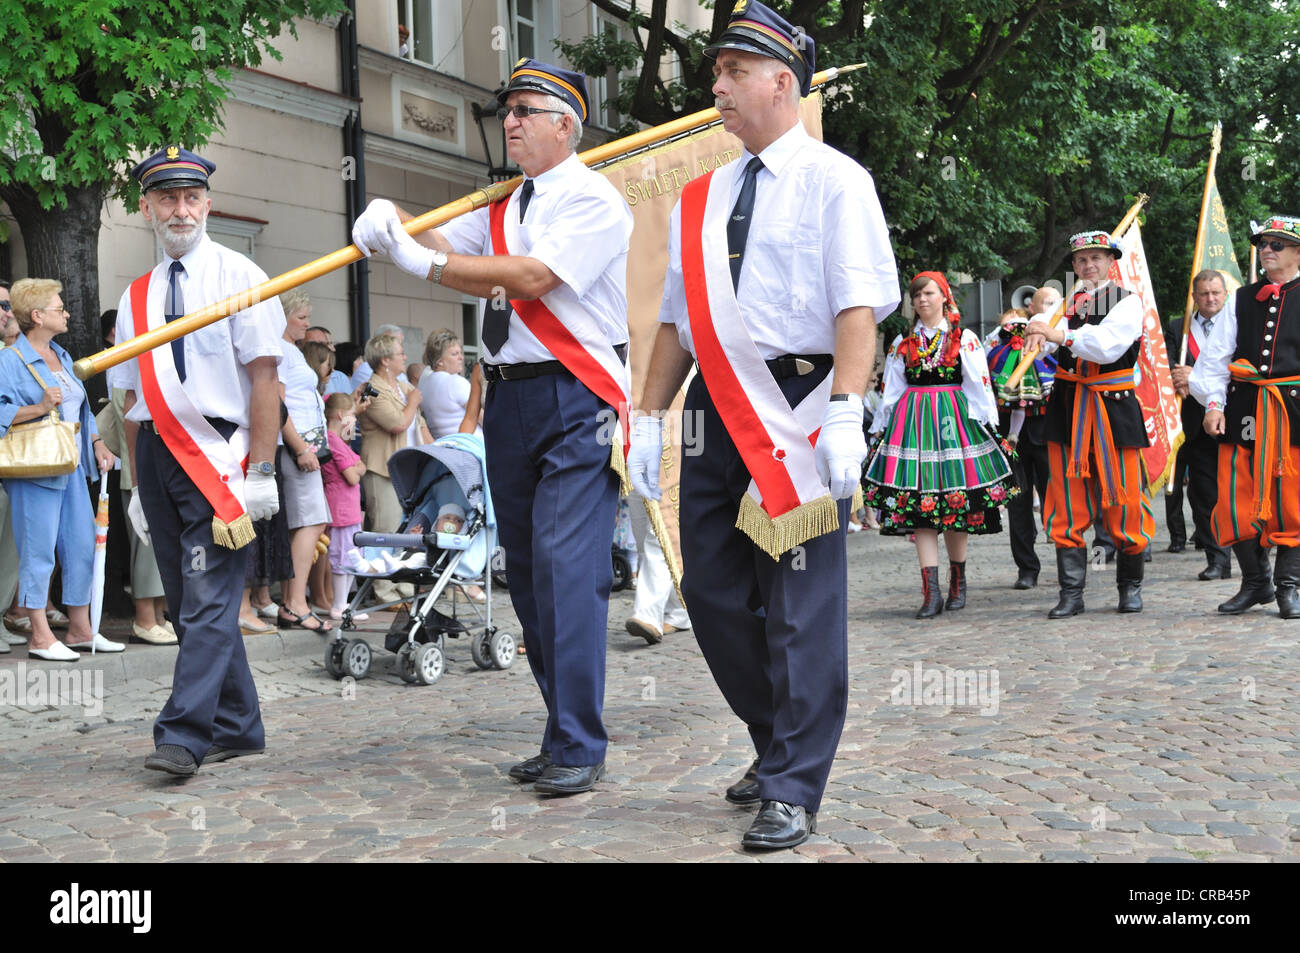 Corpus Christi Day - procession in Lowicz. - Stock Image